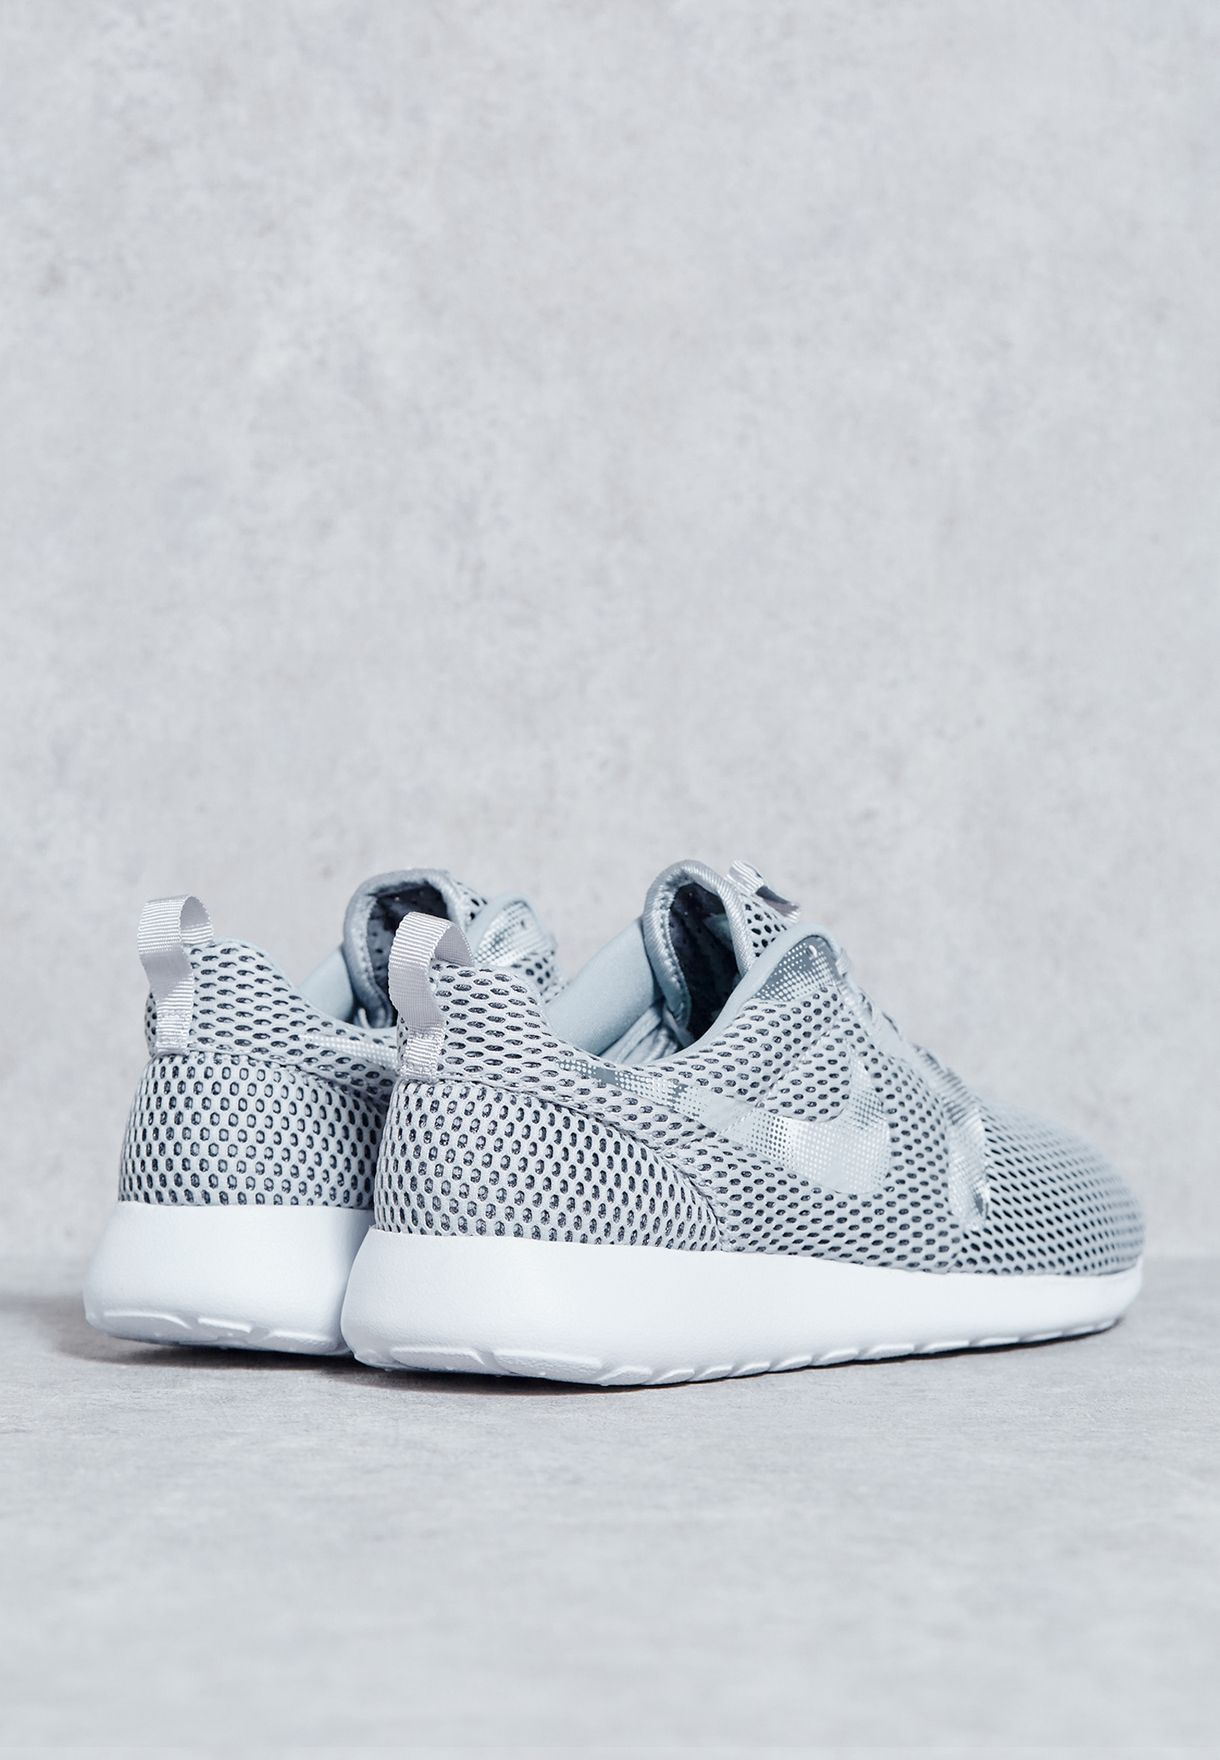 97a0d3a5d794 Shop Nike grey Roshe One Hyp BR GPX 859526-001 for Men in UAE ...